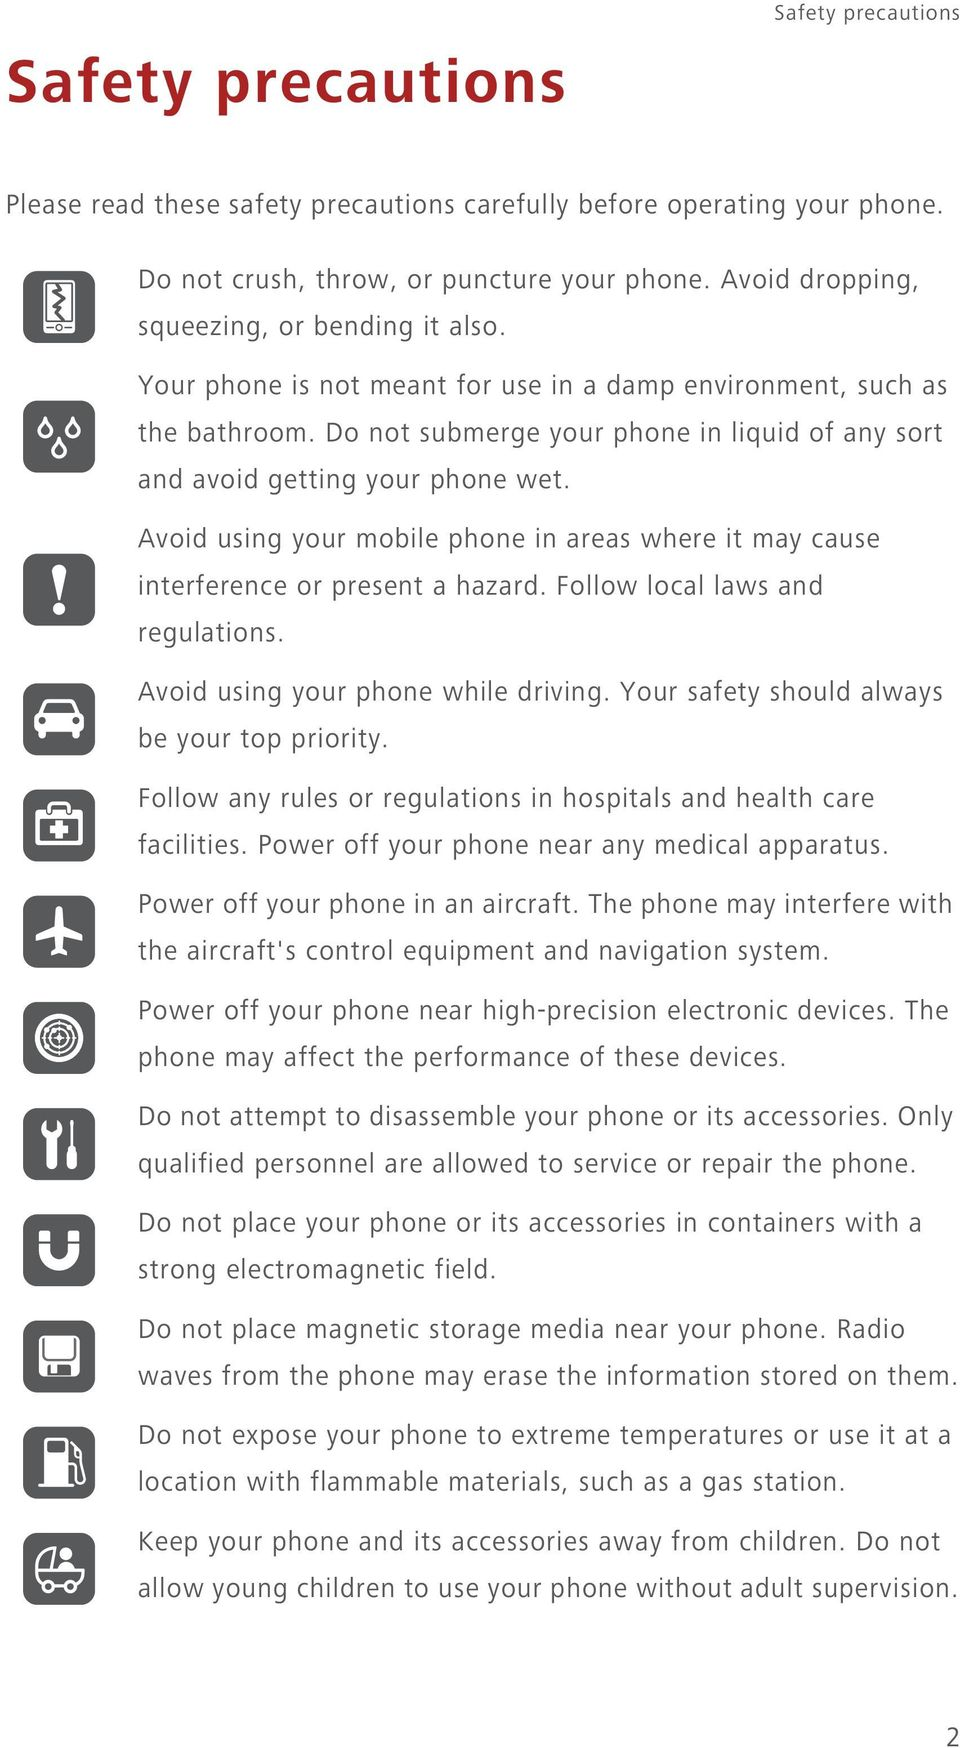 Do not submerge your phone in liquid of any sort and avoid getting your phone wet. Avoid using your mobile phone in areas where it may cause interference or present a hazard.